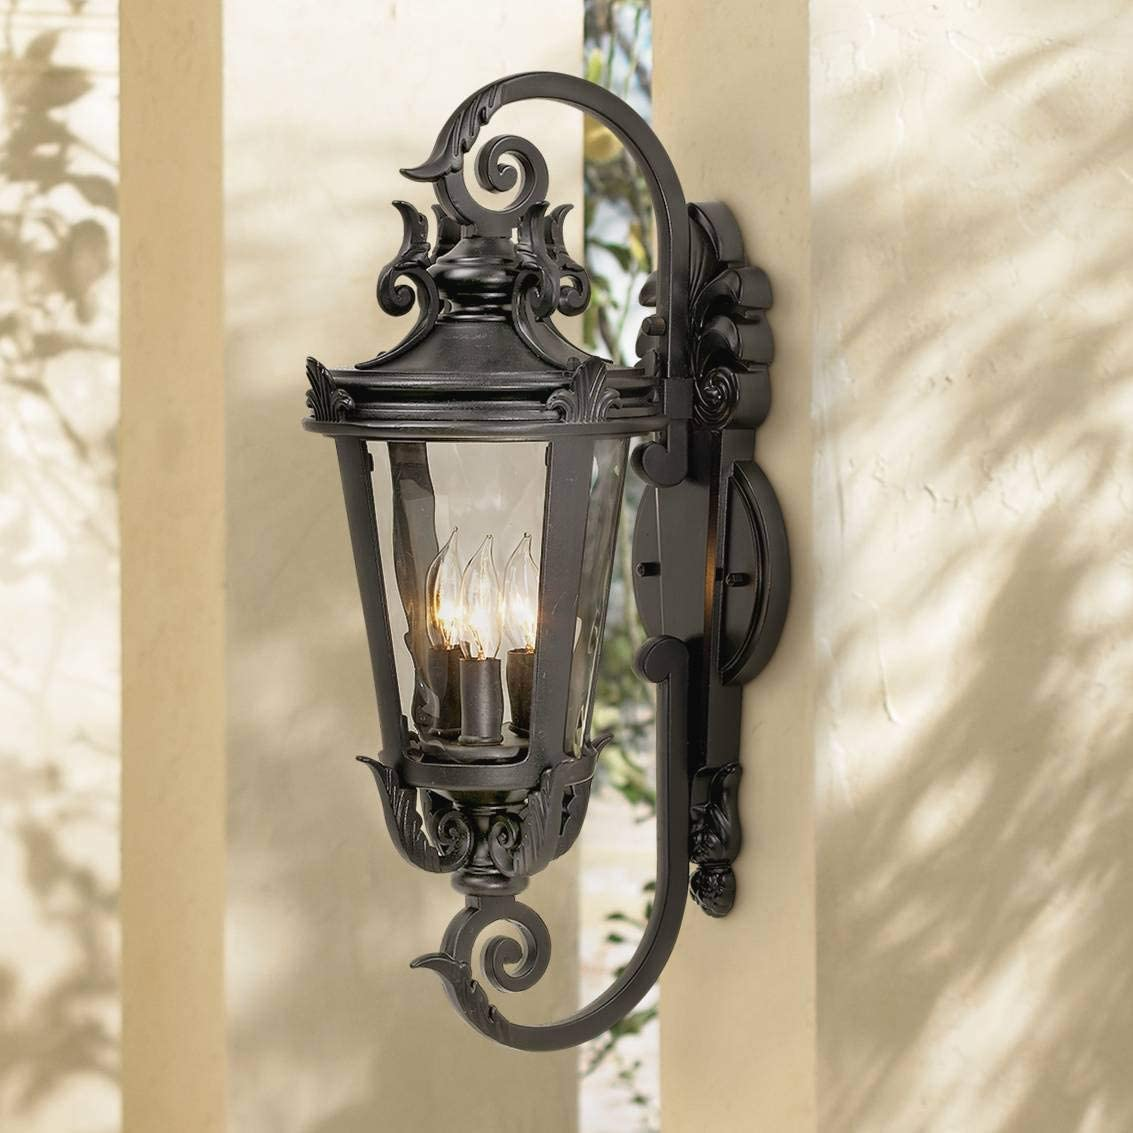 Casa Marseille Traditional Outdoor Wall Light Fixture Mediterranean Black Double Scroll Arm 21 1 2 Clear Hammered Glass for Exterior Porch Patio – John Timberland